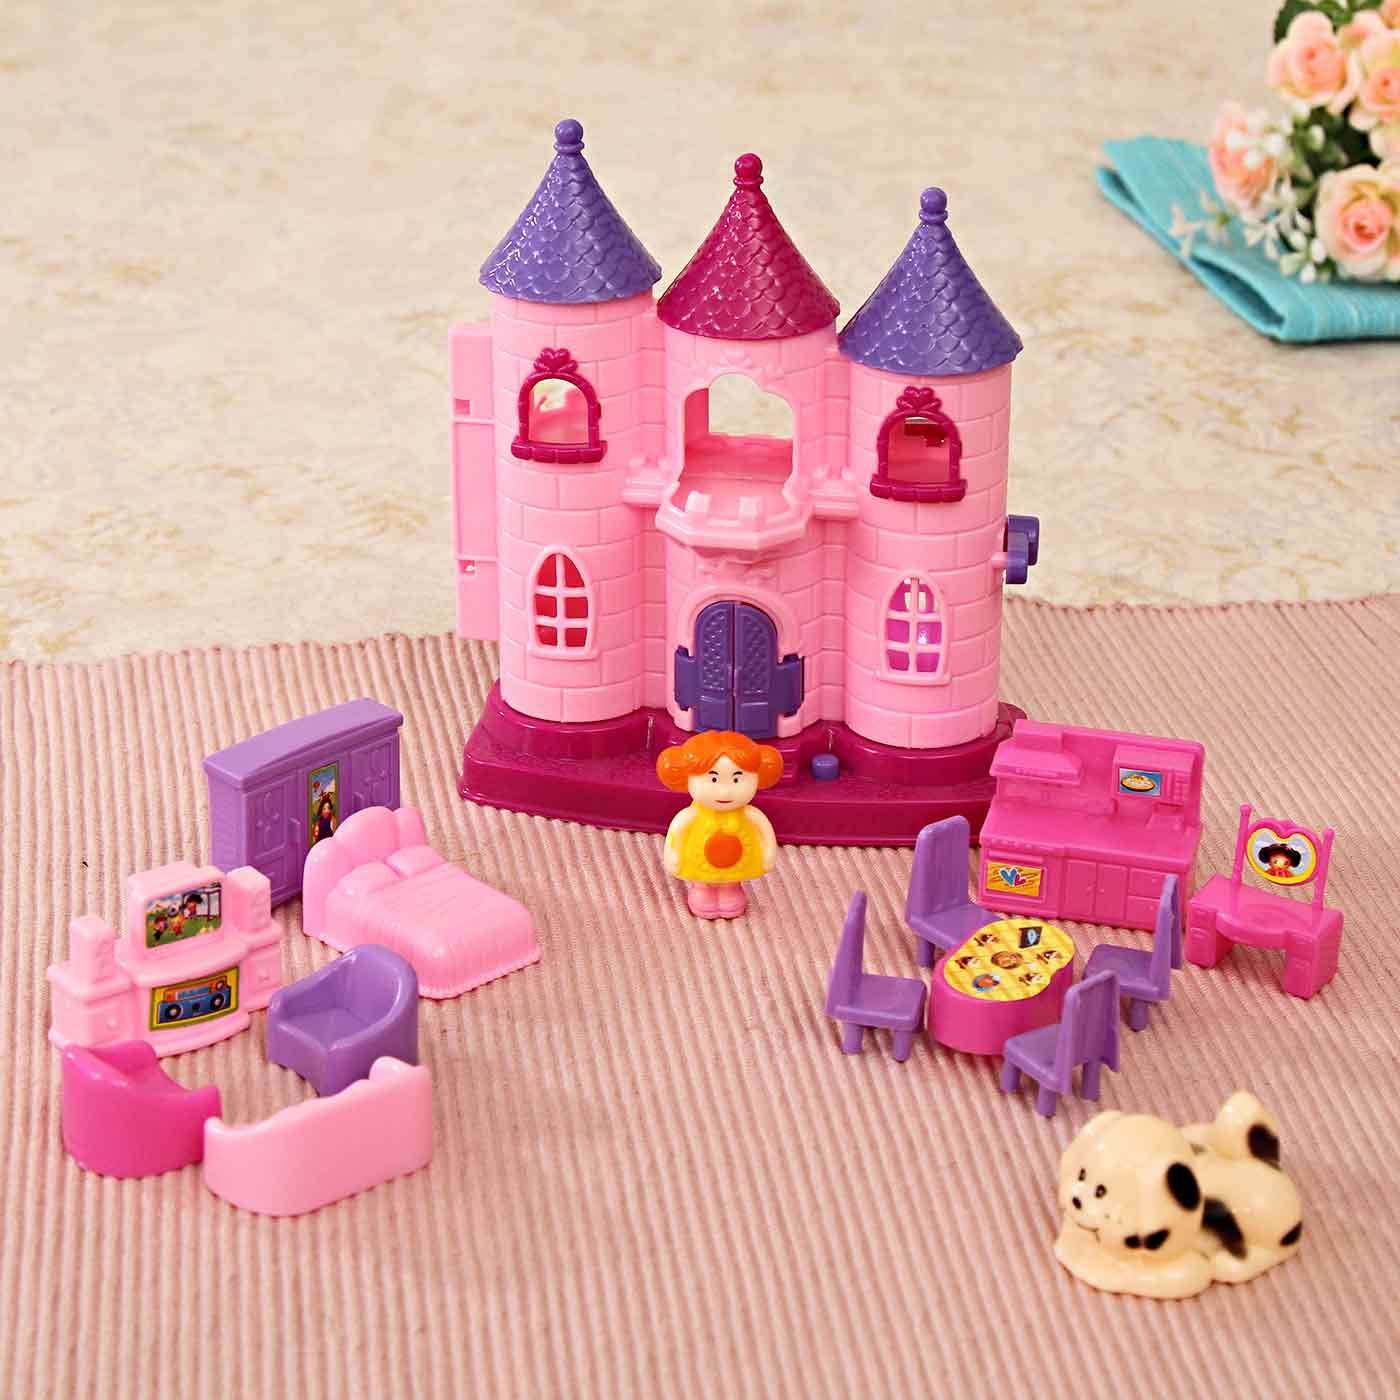 Princess Castle with furniture